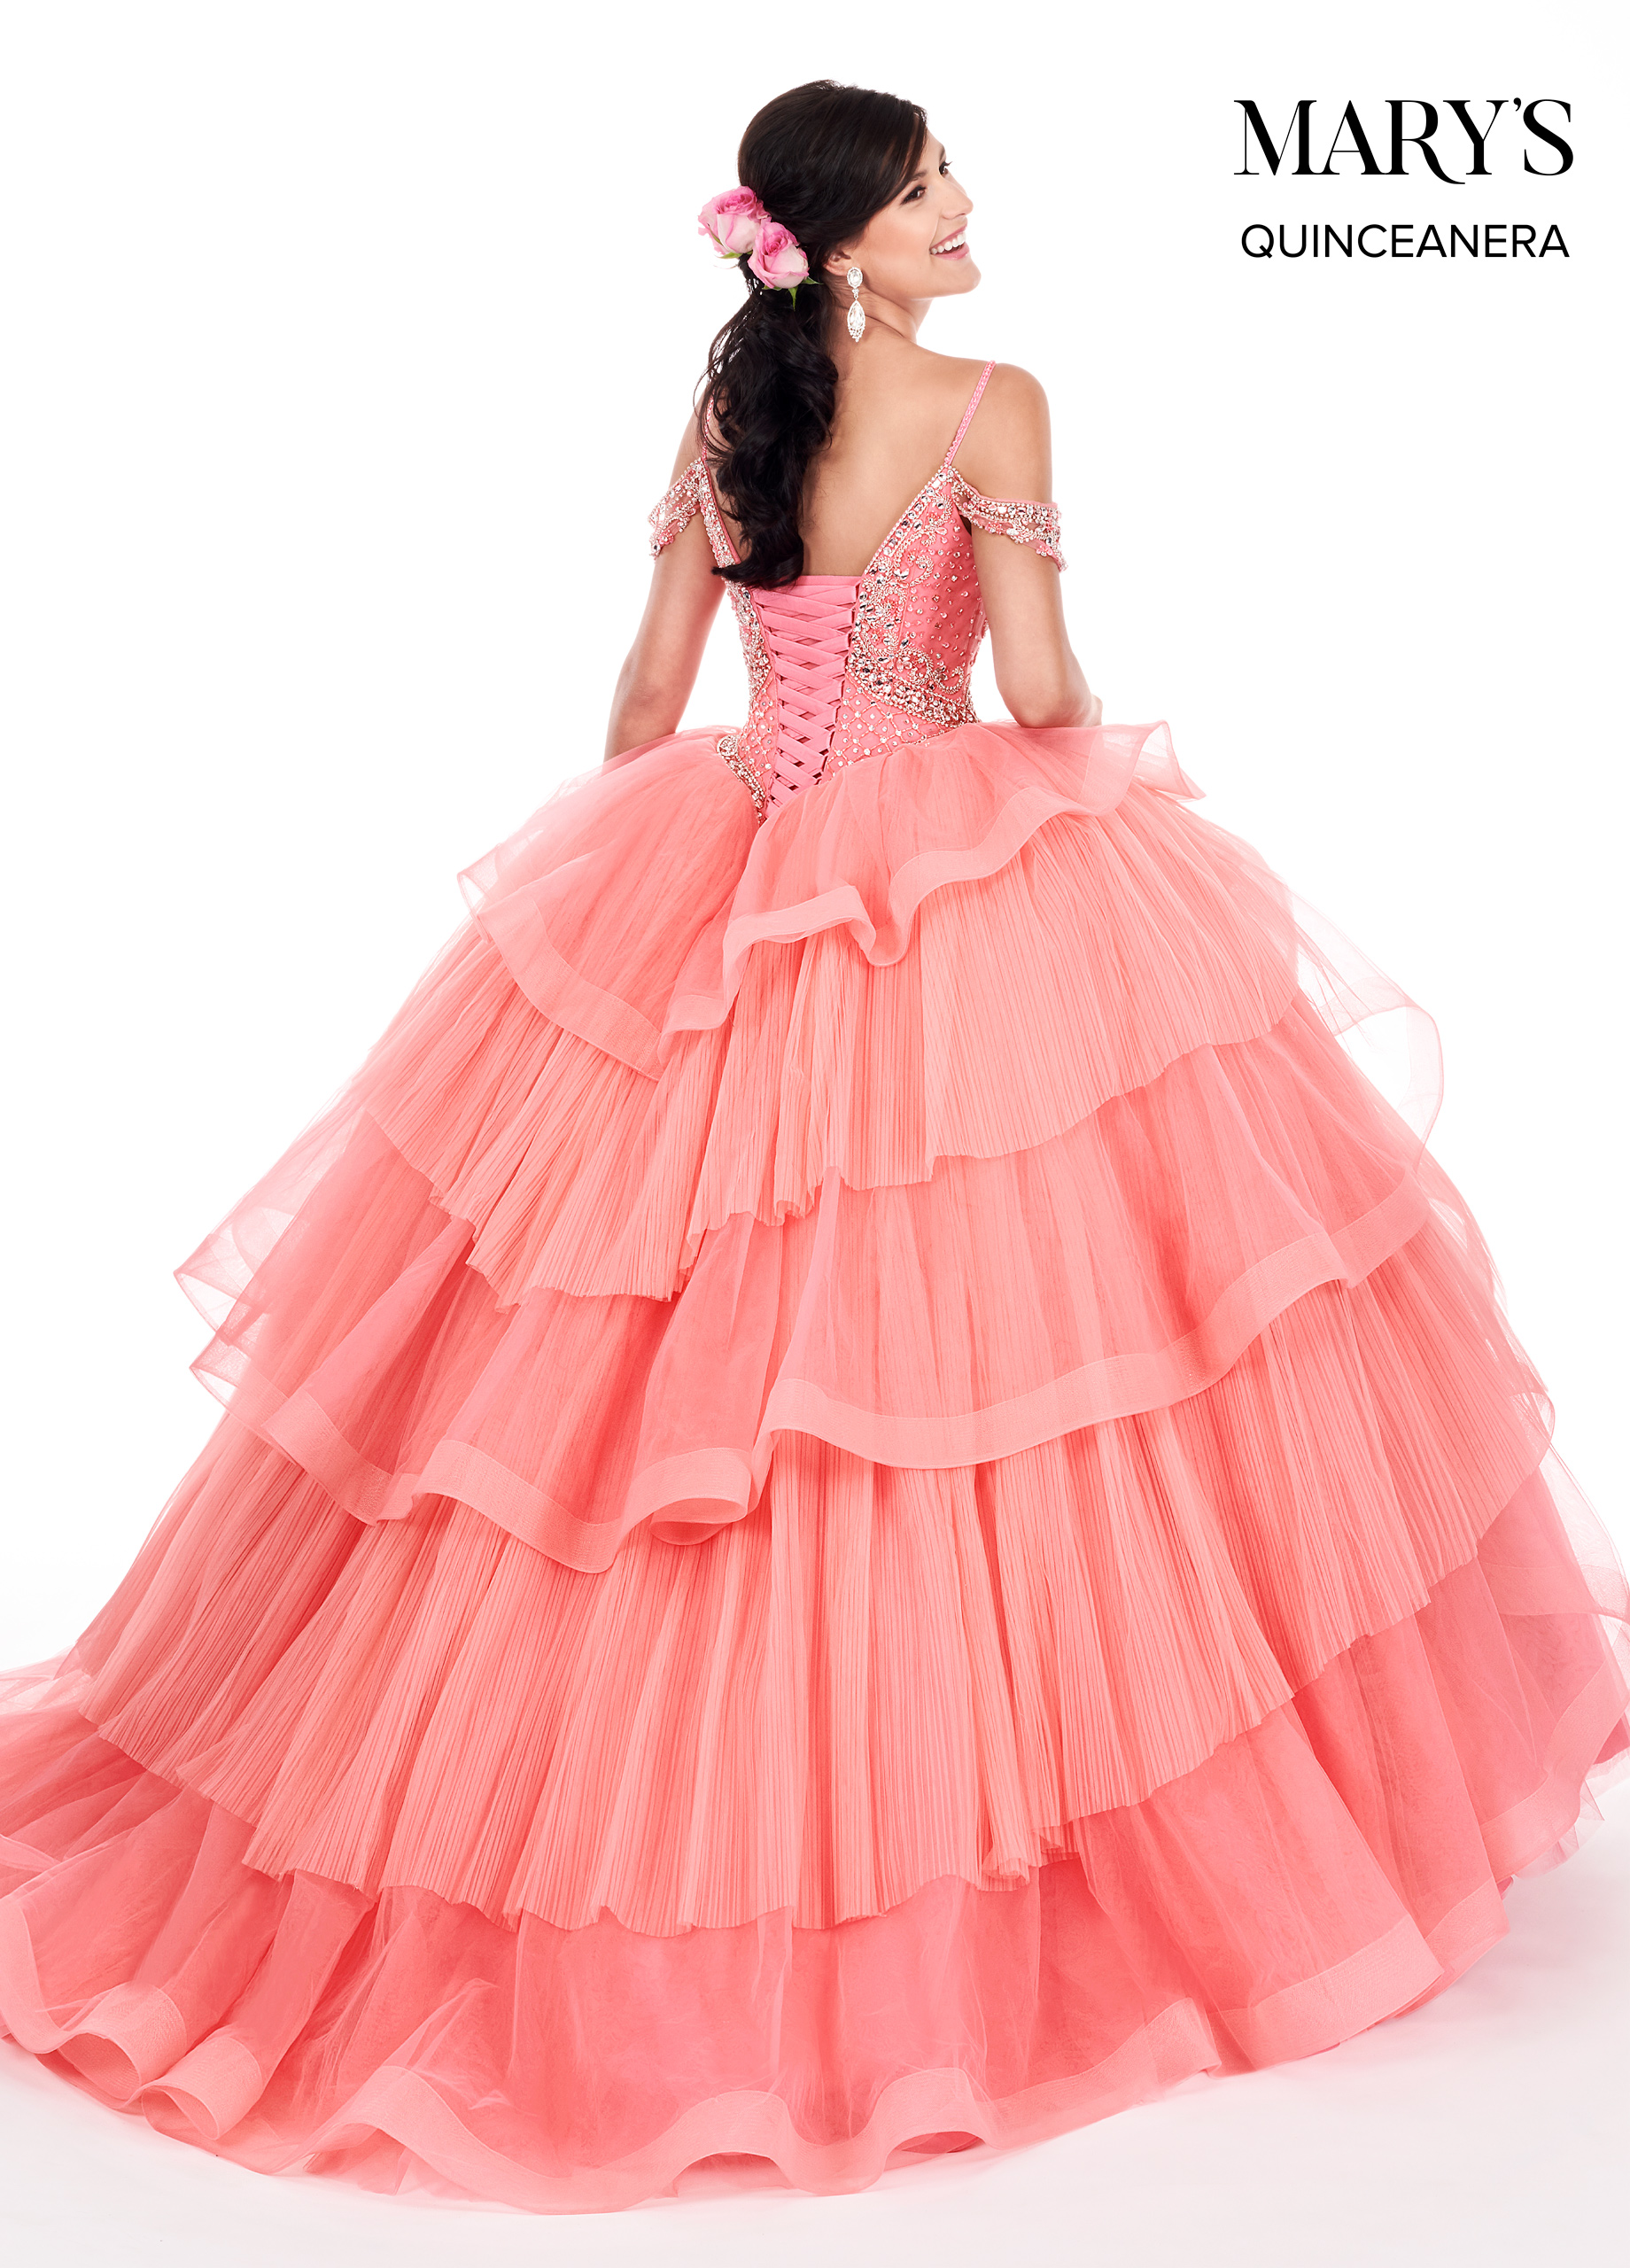 Marys Quinceanera Dresses | Mary's Quinceanera | Style - MQ2053